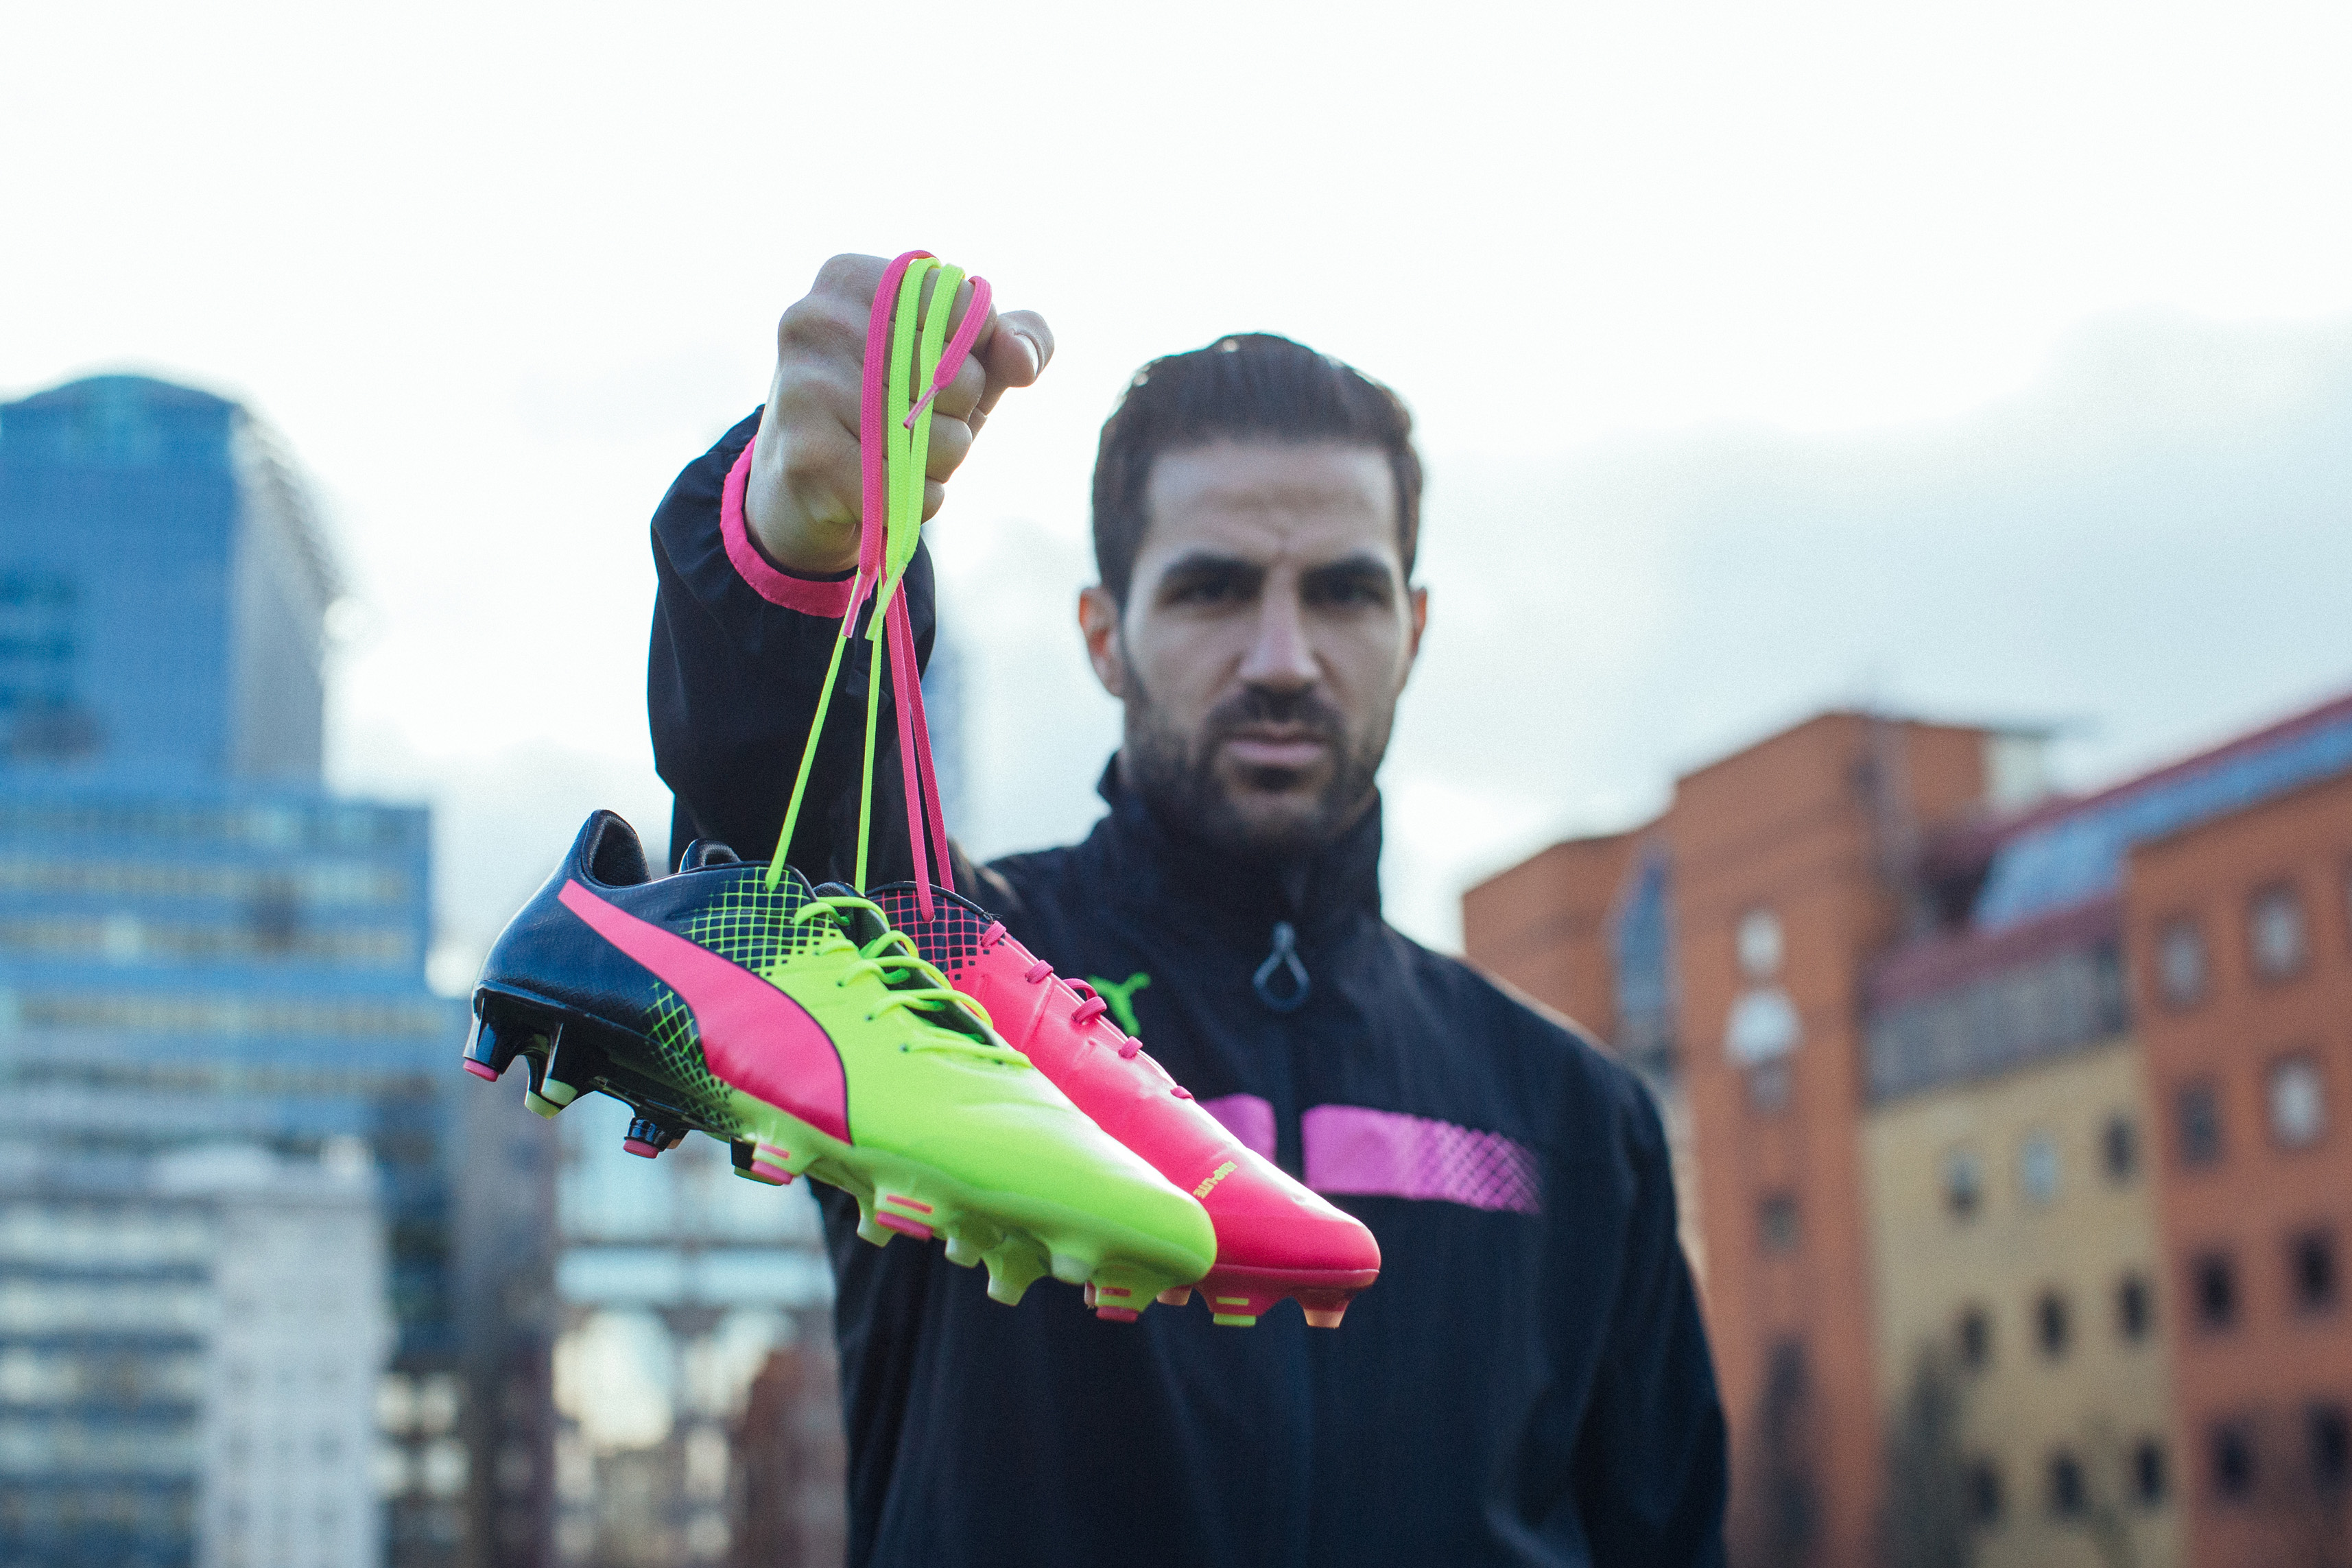 Fabregas can light up France in new Puma Tricks